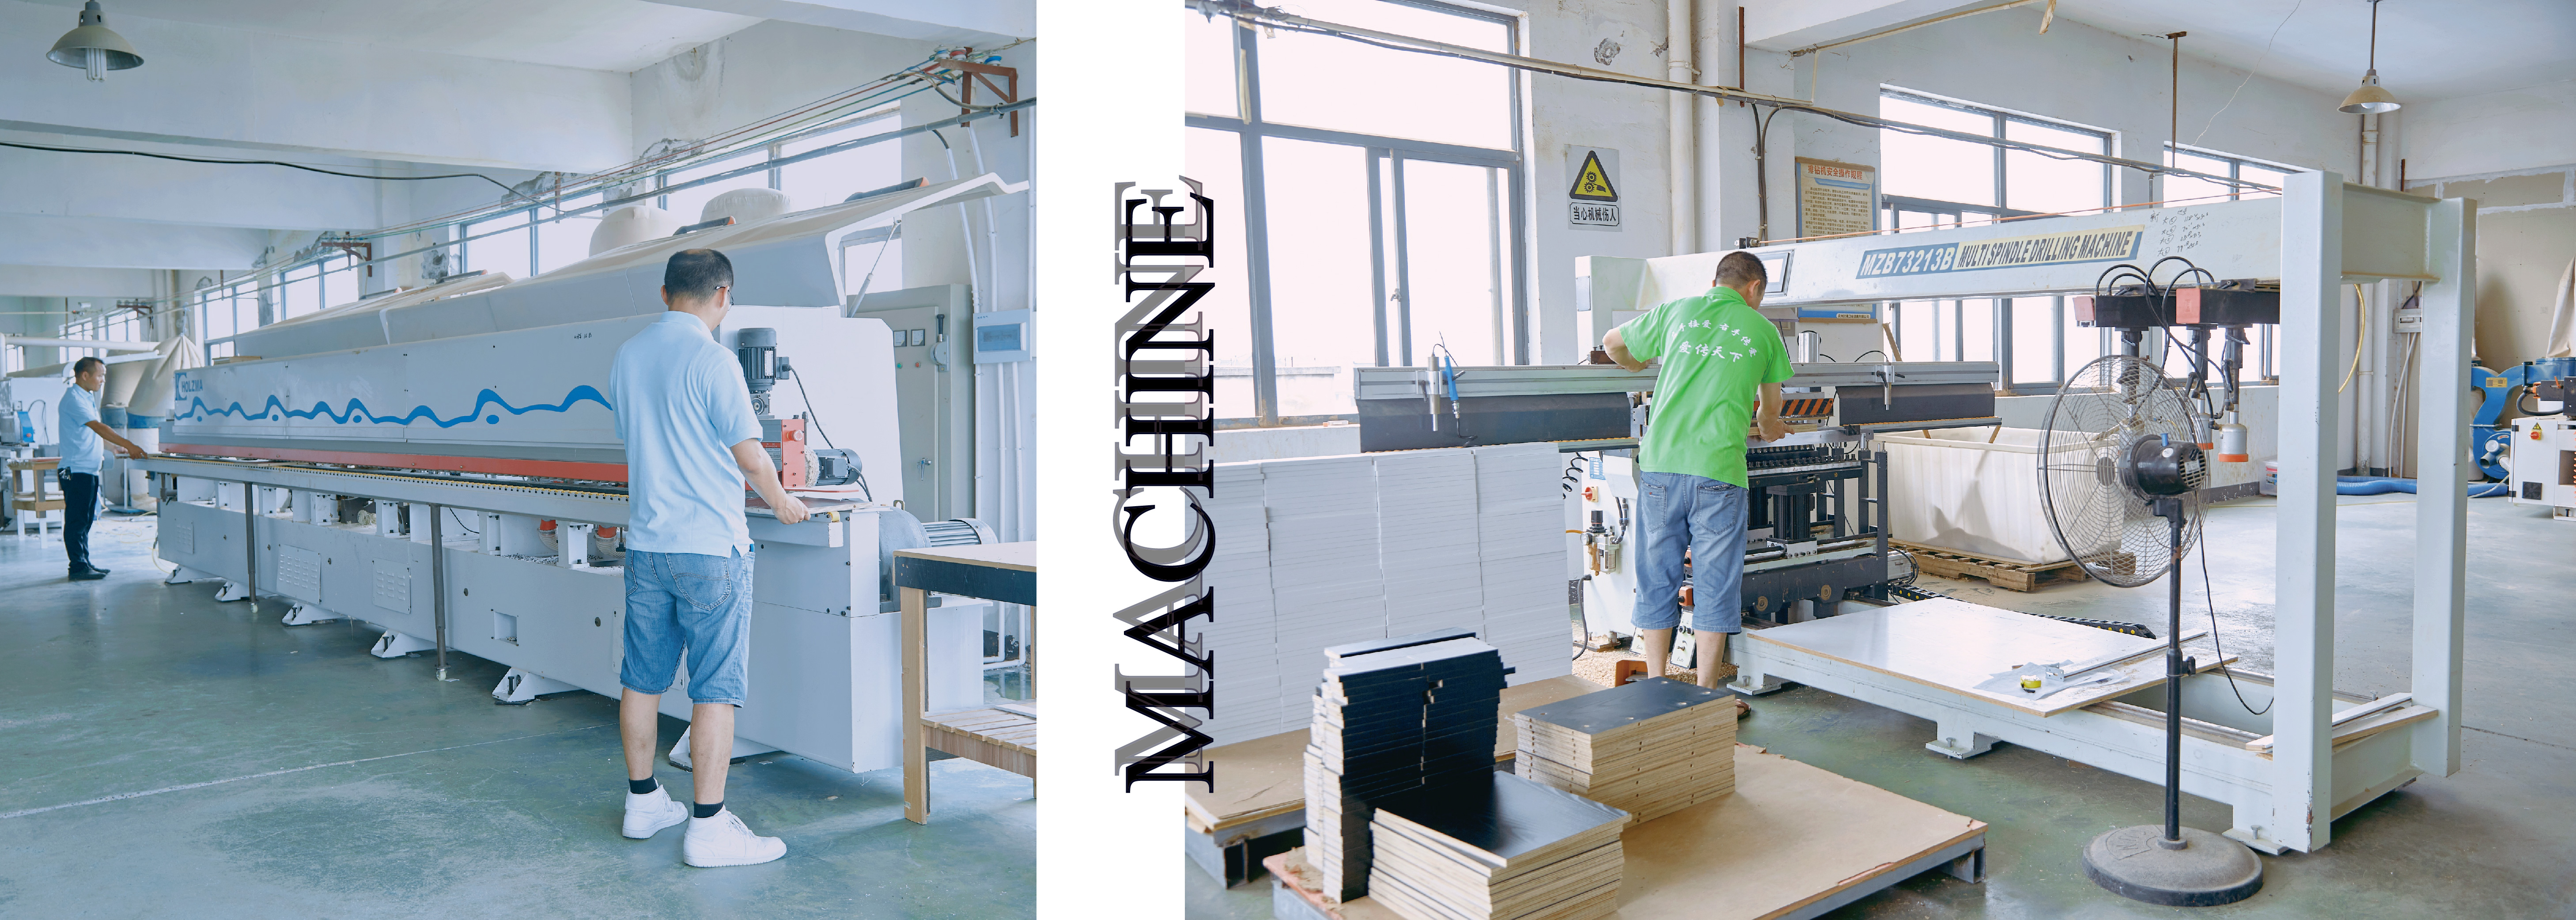 Bathroom Cabinet Factory Manufacture Workshop Bathroom Idea OEM